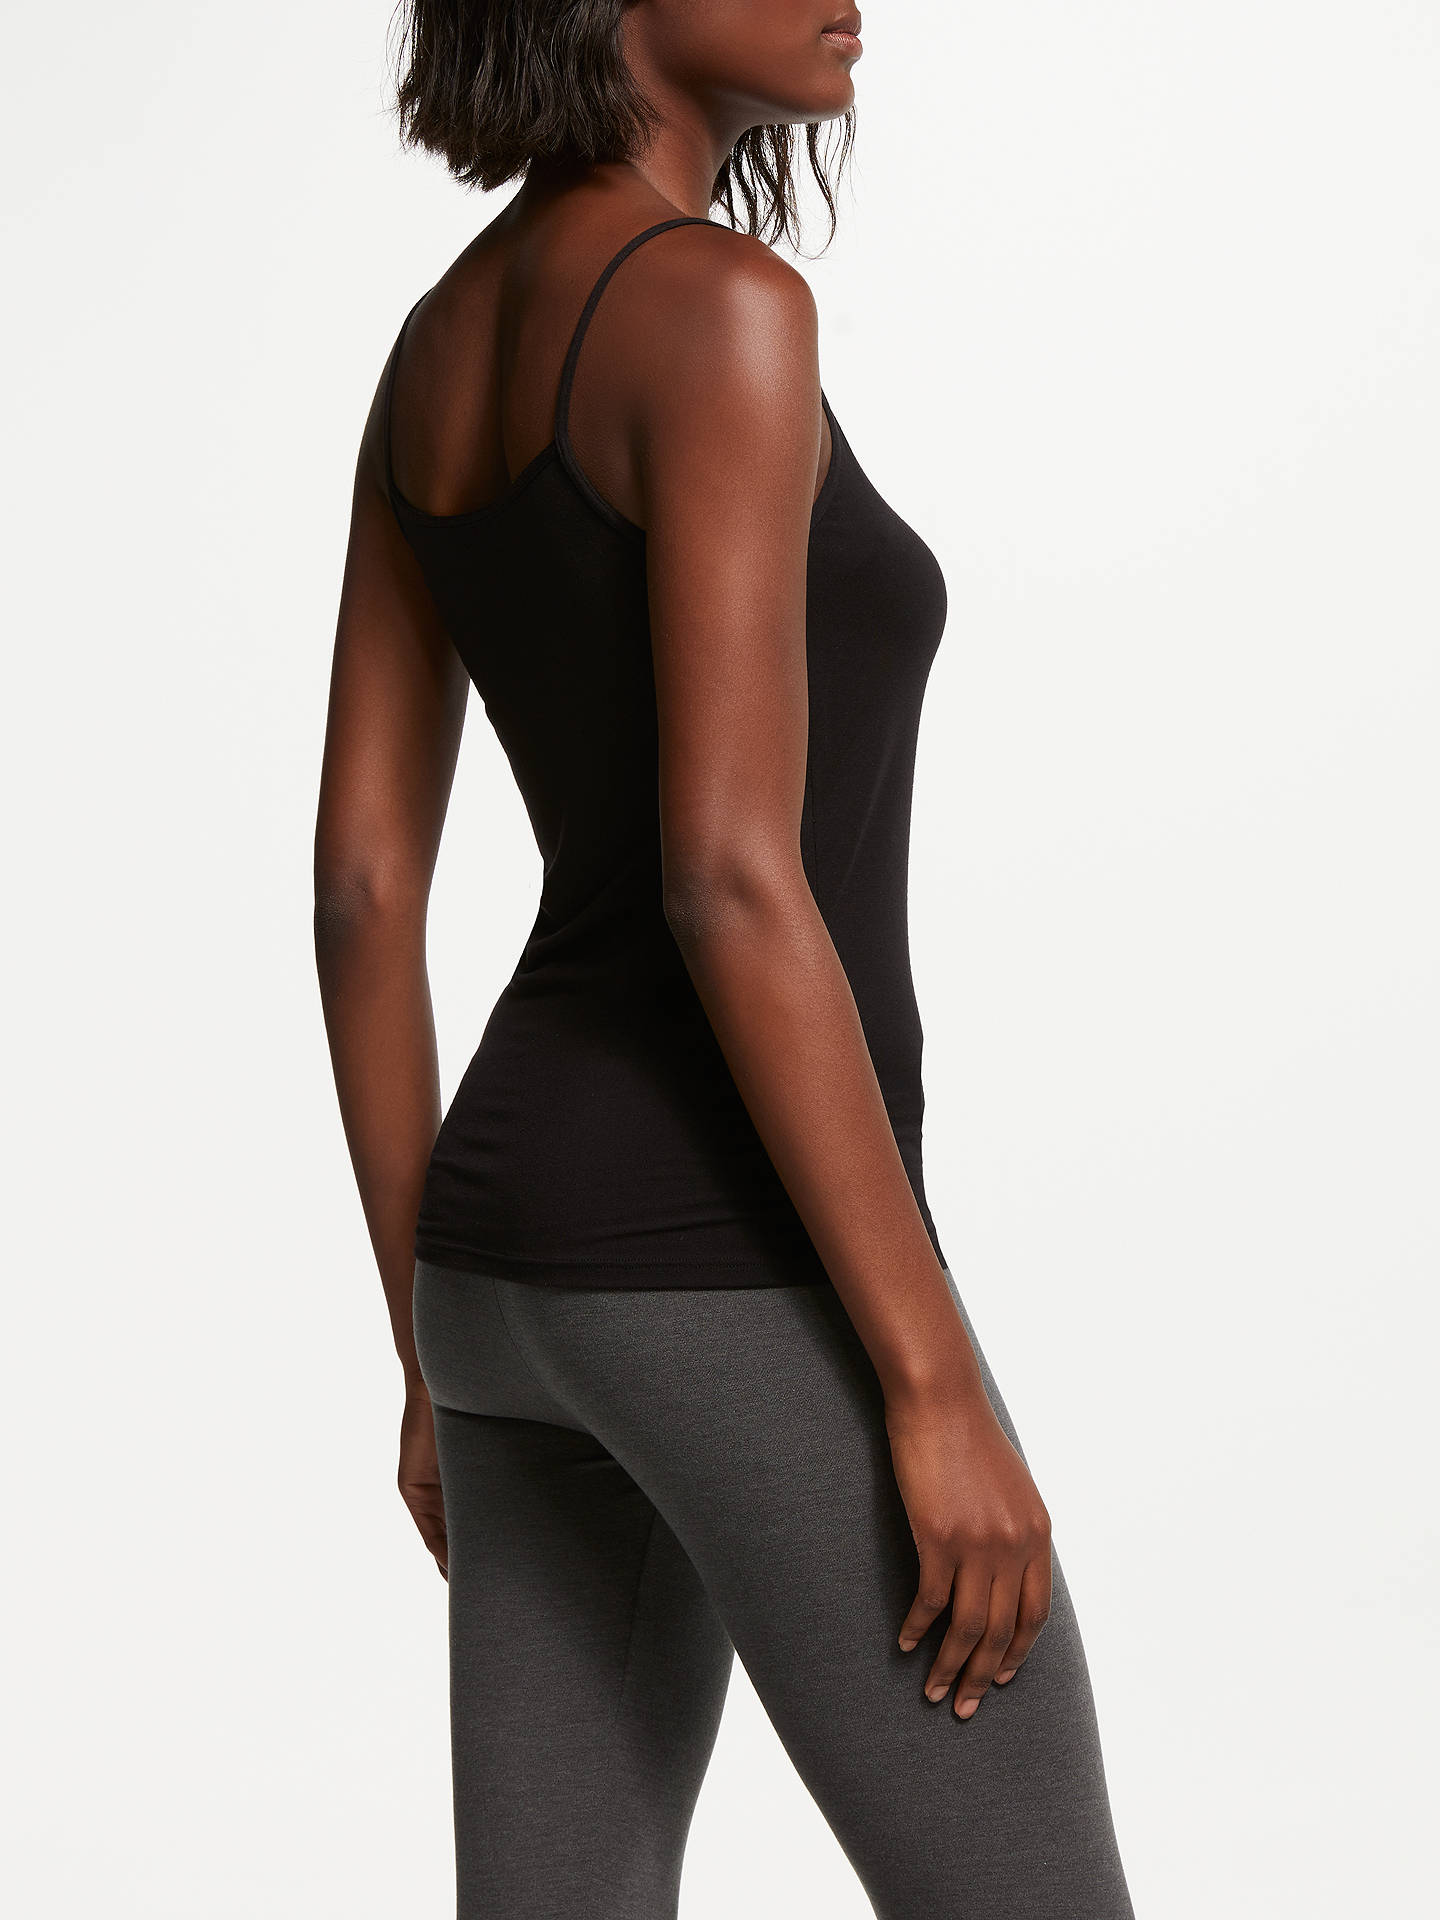 BuyJohn Lewis & Partners Heat Generating Thermal Camisole, Black, 8-10 Online at johnlewis.com